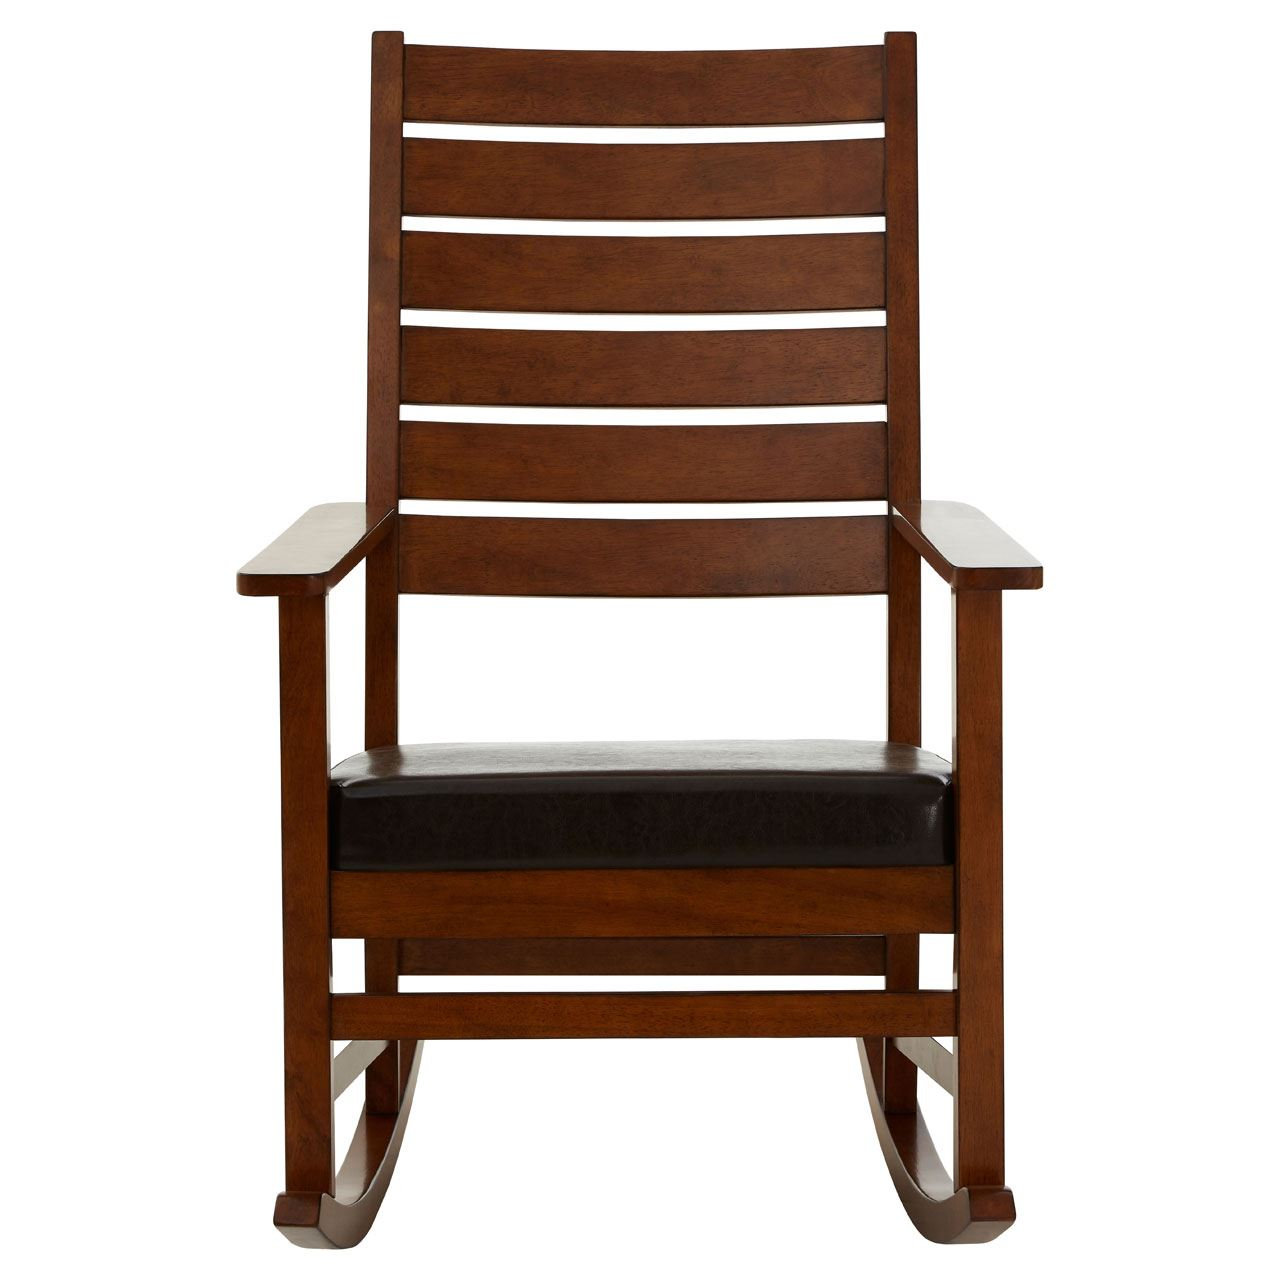 20 Best Ideas of Natural Brown Wood Folding Rocking Chairs